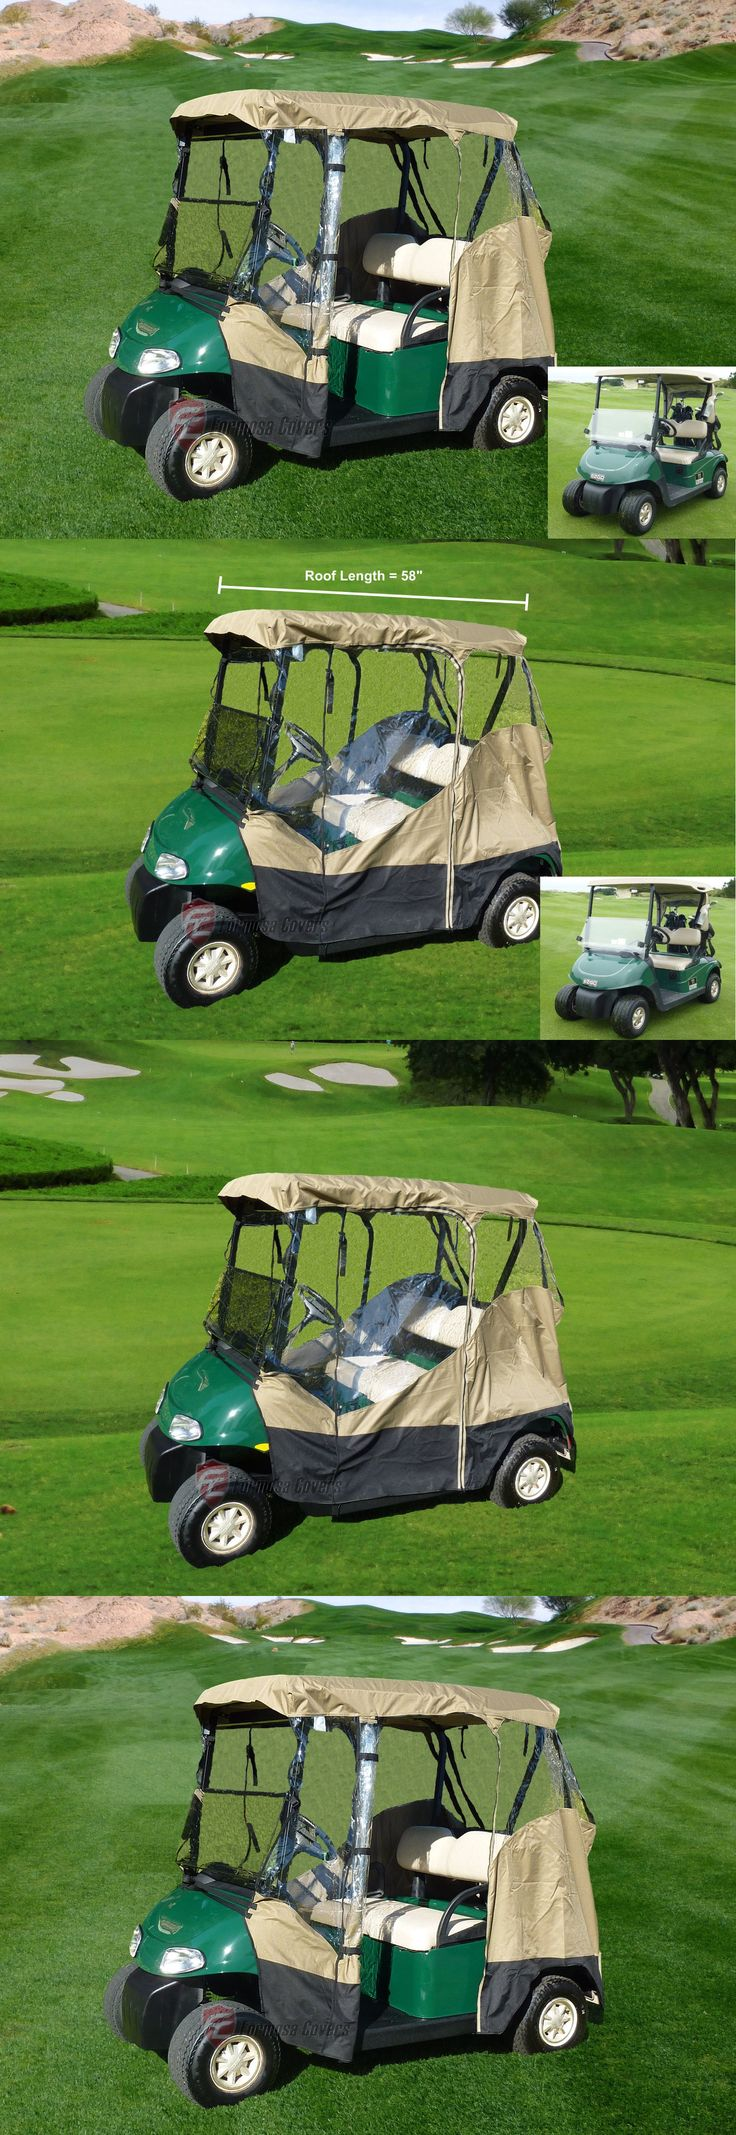 Other Golf Accessories 1514: 3 Sided Drivable Golf Cart 2 Seater Enclosure Fit E Z Go, Club Car Yamaha G Mode -> BUY IT NOW ONLY: $59.99 on eBay!